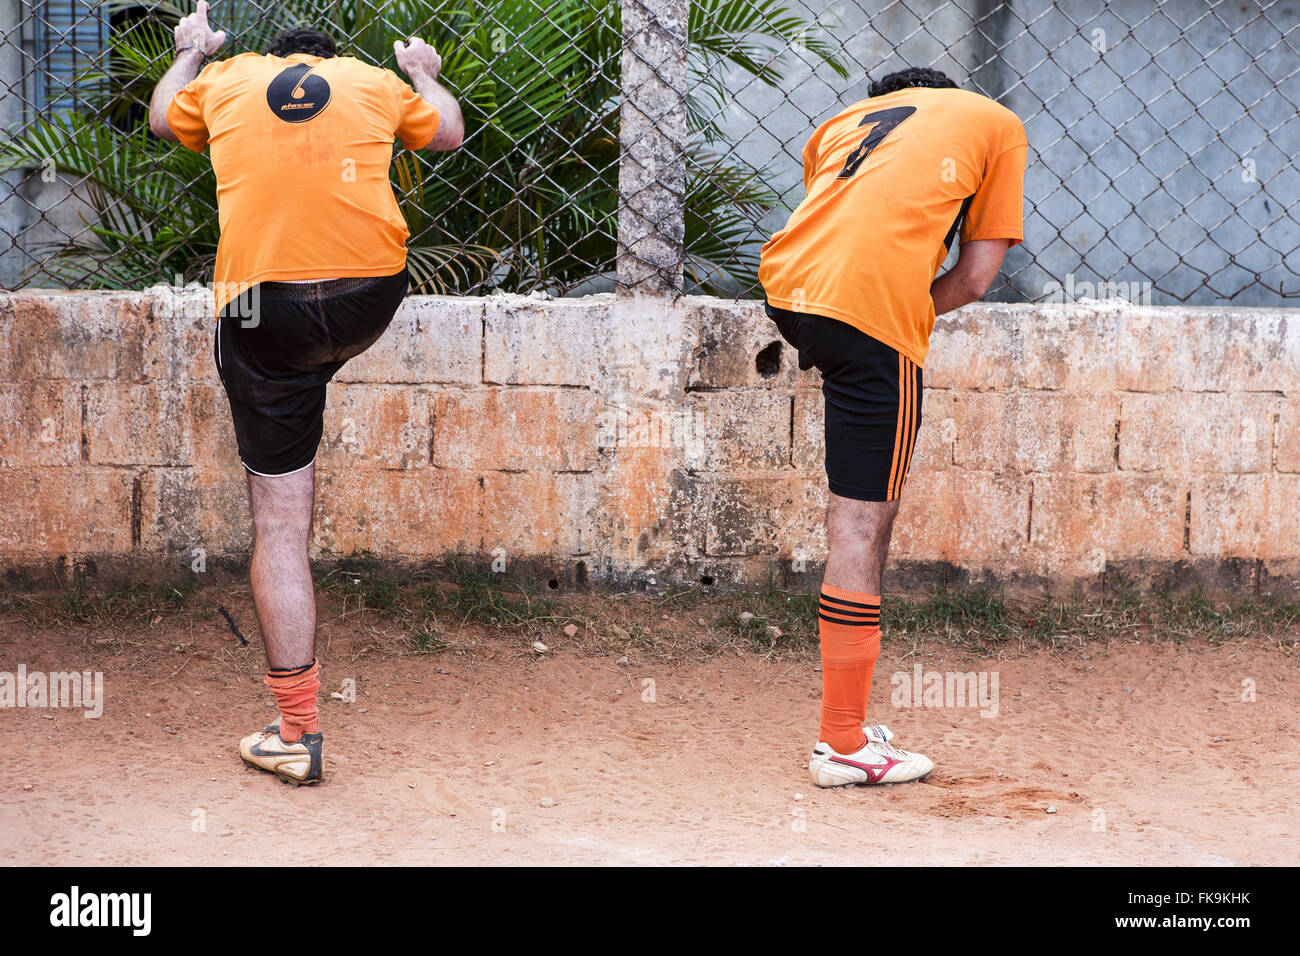 Soccer Players floodplain doing stretching - Lapa district - west - Stock Image